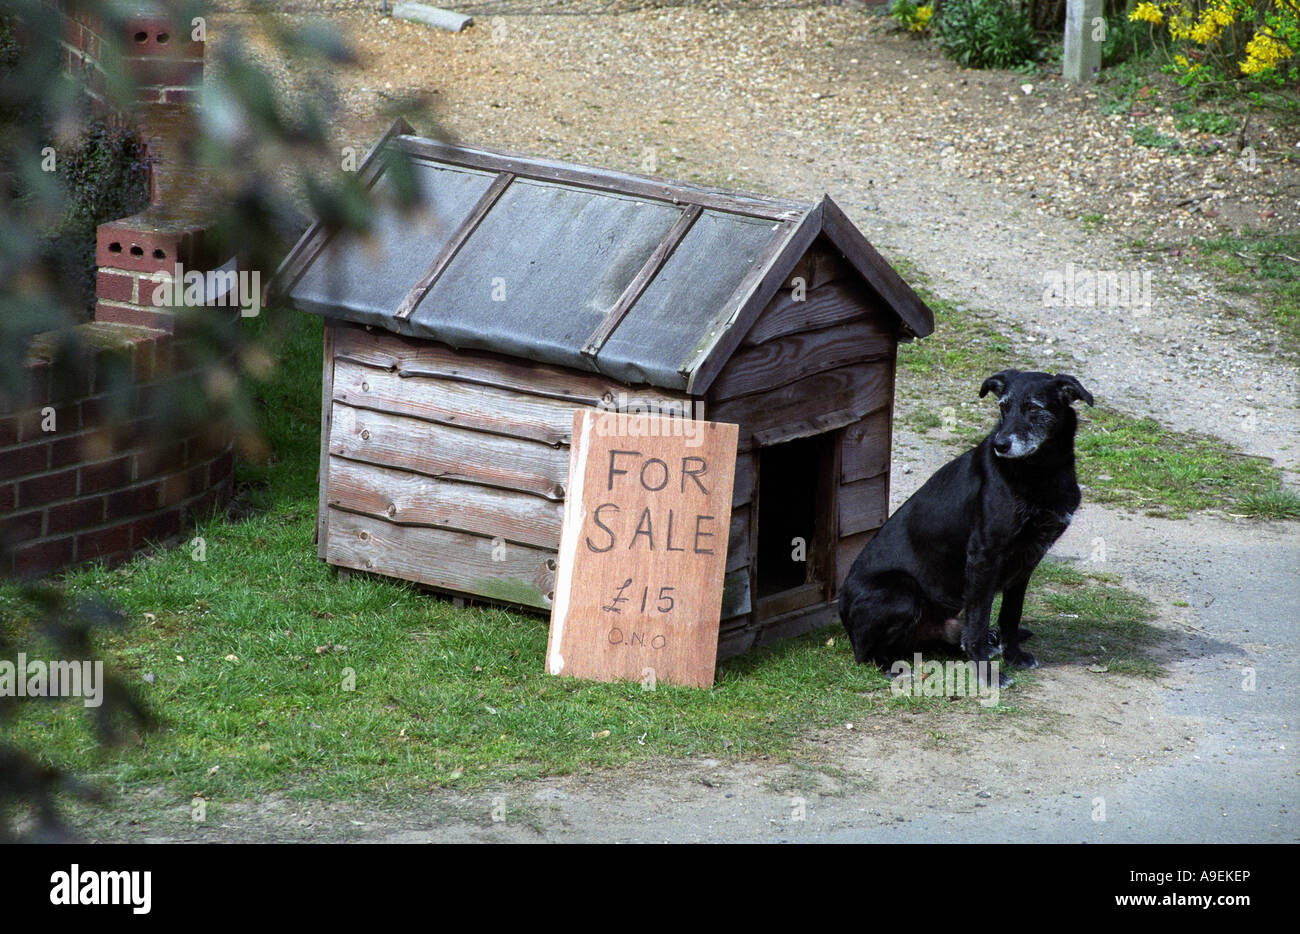 A Dog Kennel For Sale In The Village Of Bawdsey Suffolk Uk